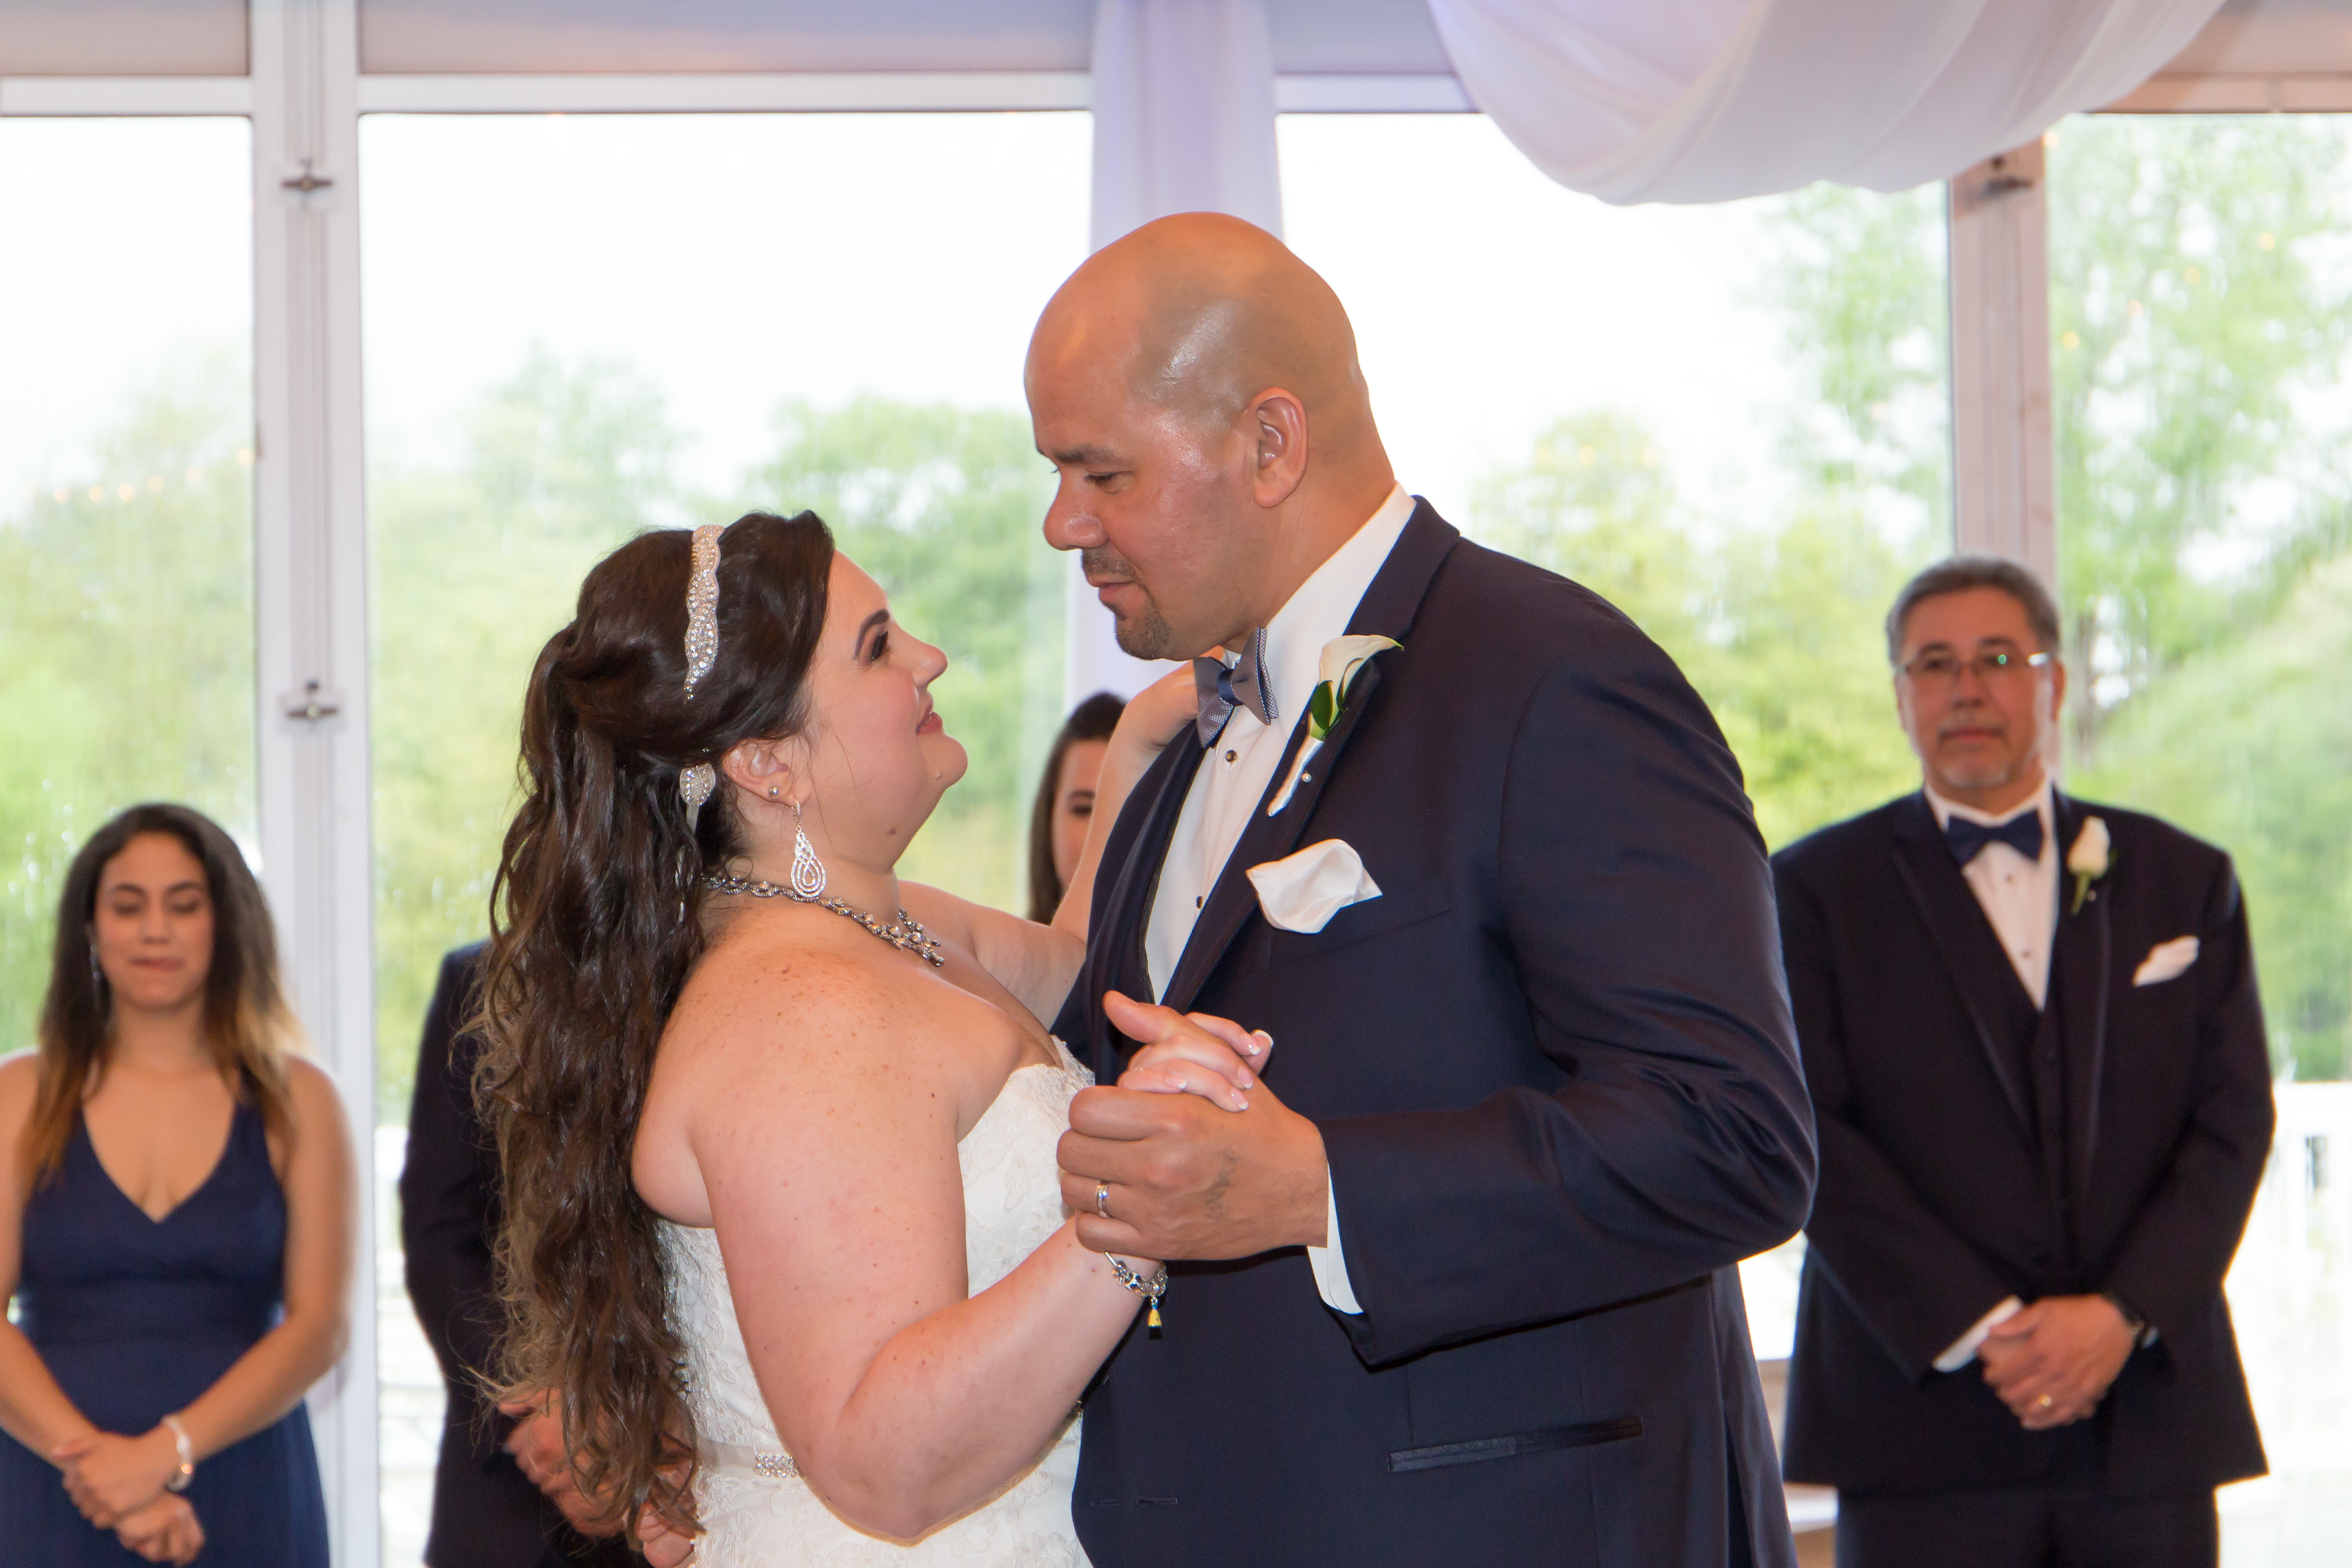 Elizabeth_Dennis Sierra Wedding April 22 2017-345